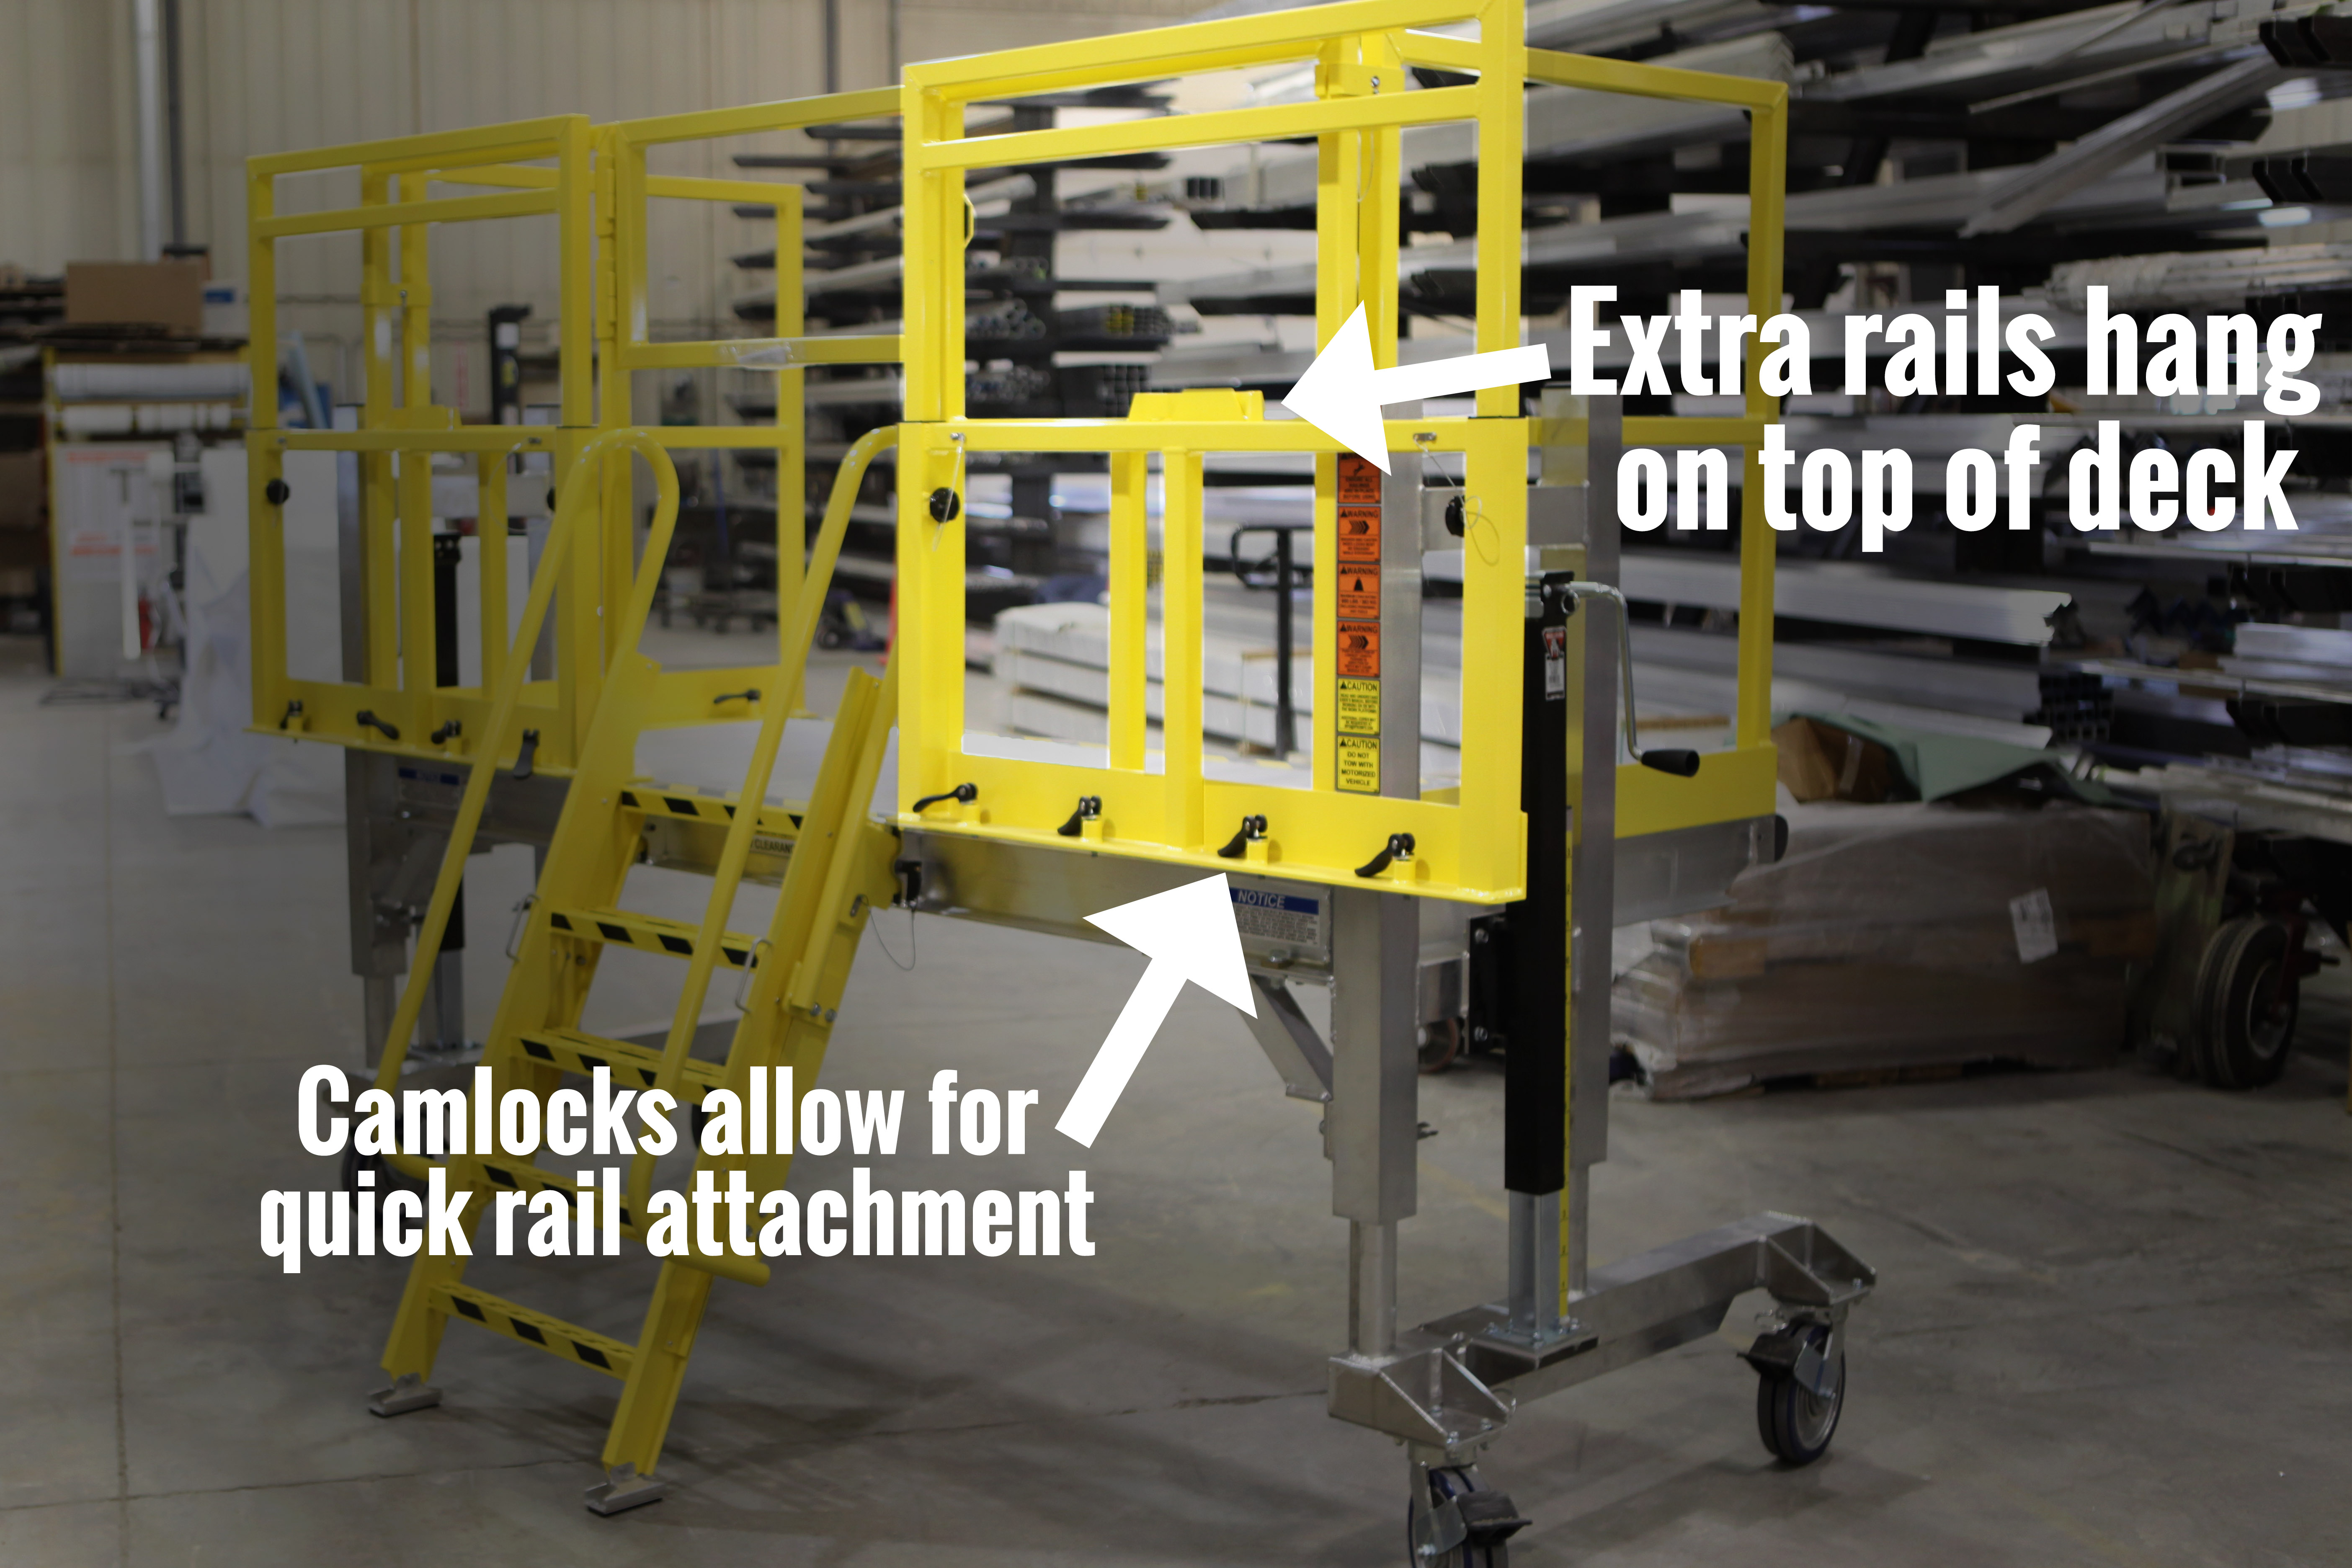 Spika helicopter aircraft maintenance stand with tool-free camlock attachment and options for hanging rails